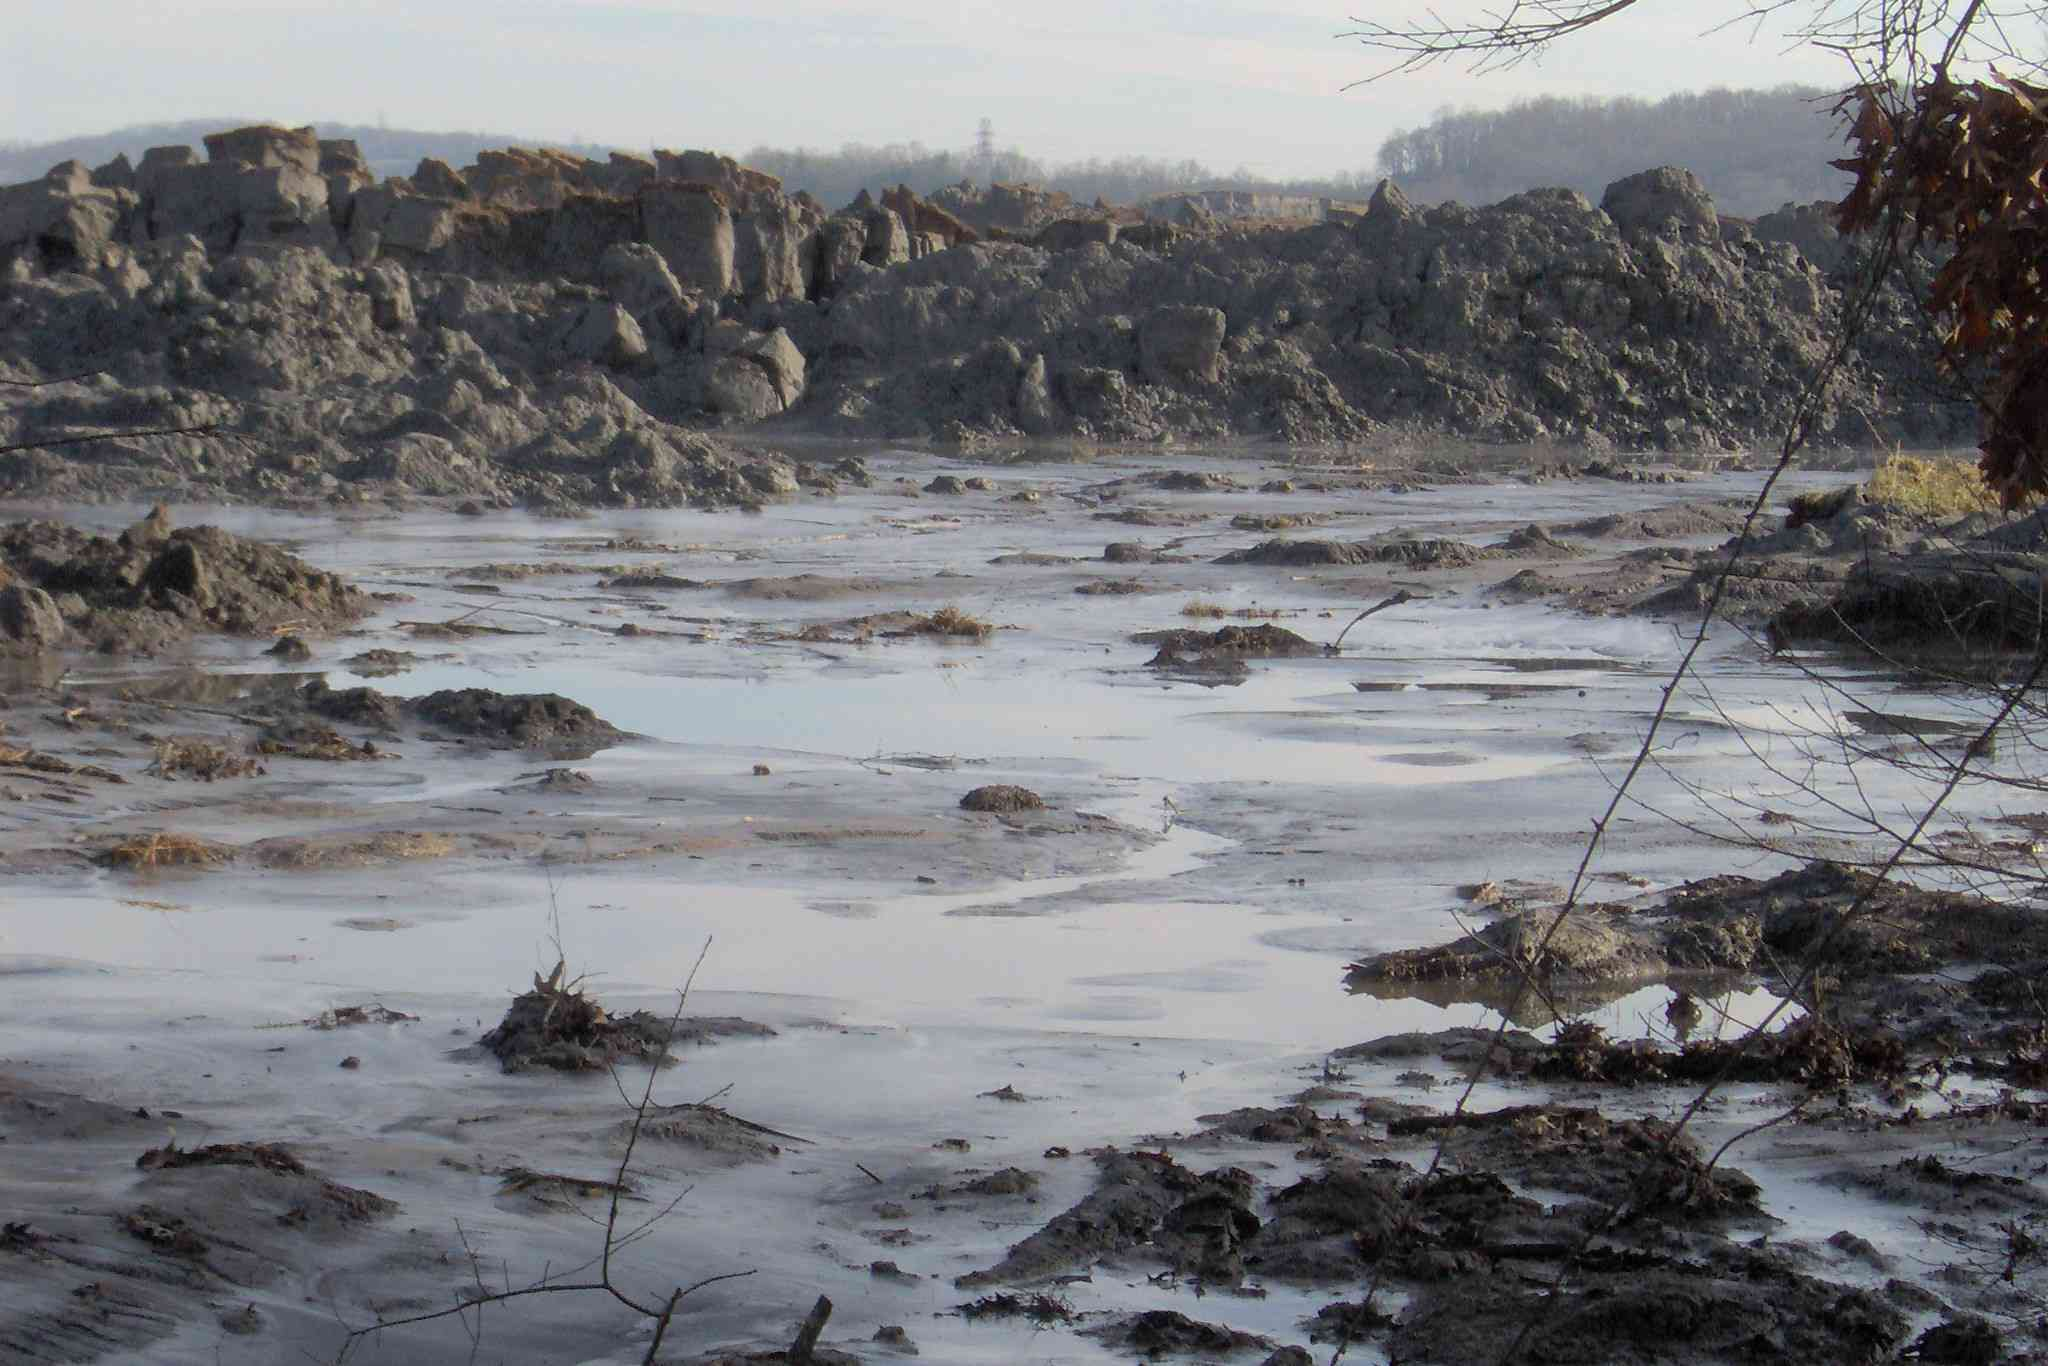 Rocky landscape covered with grey slurry of coal ash